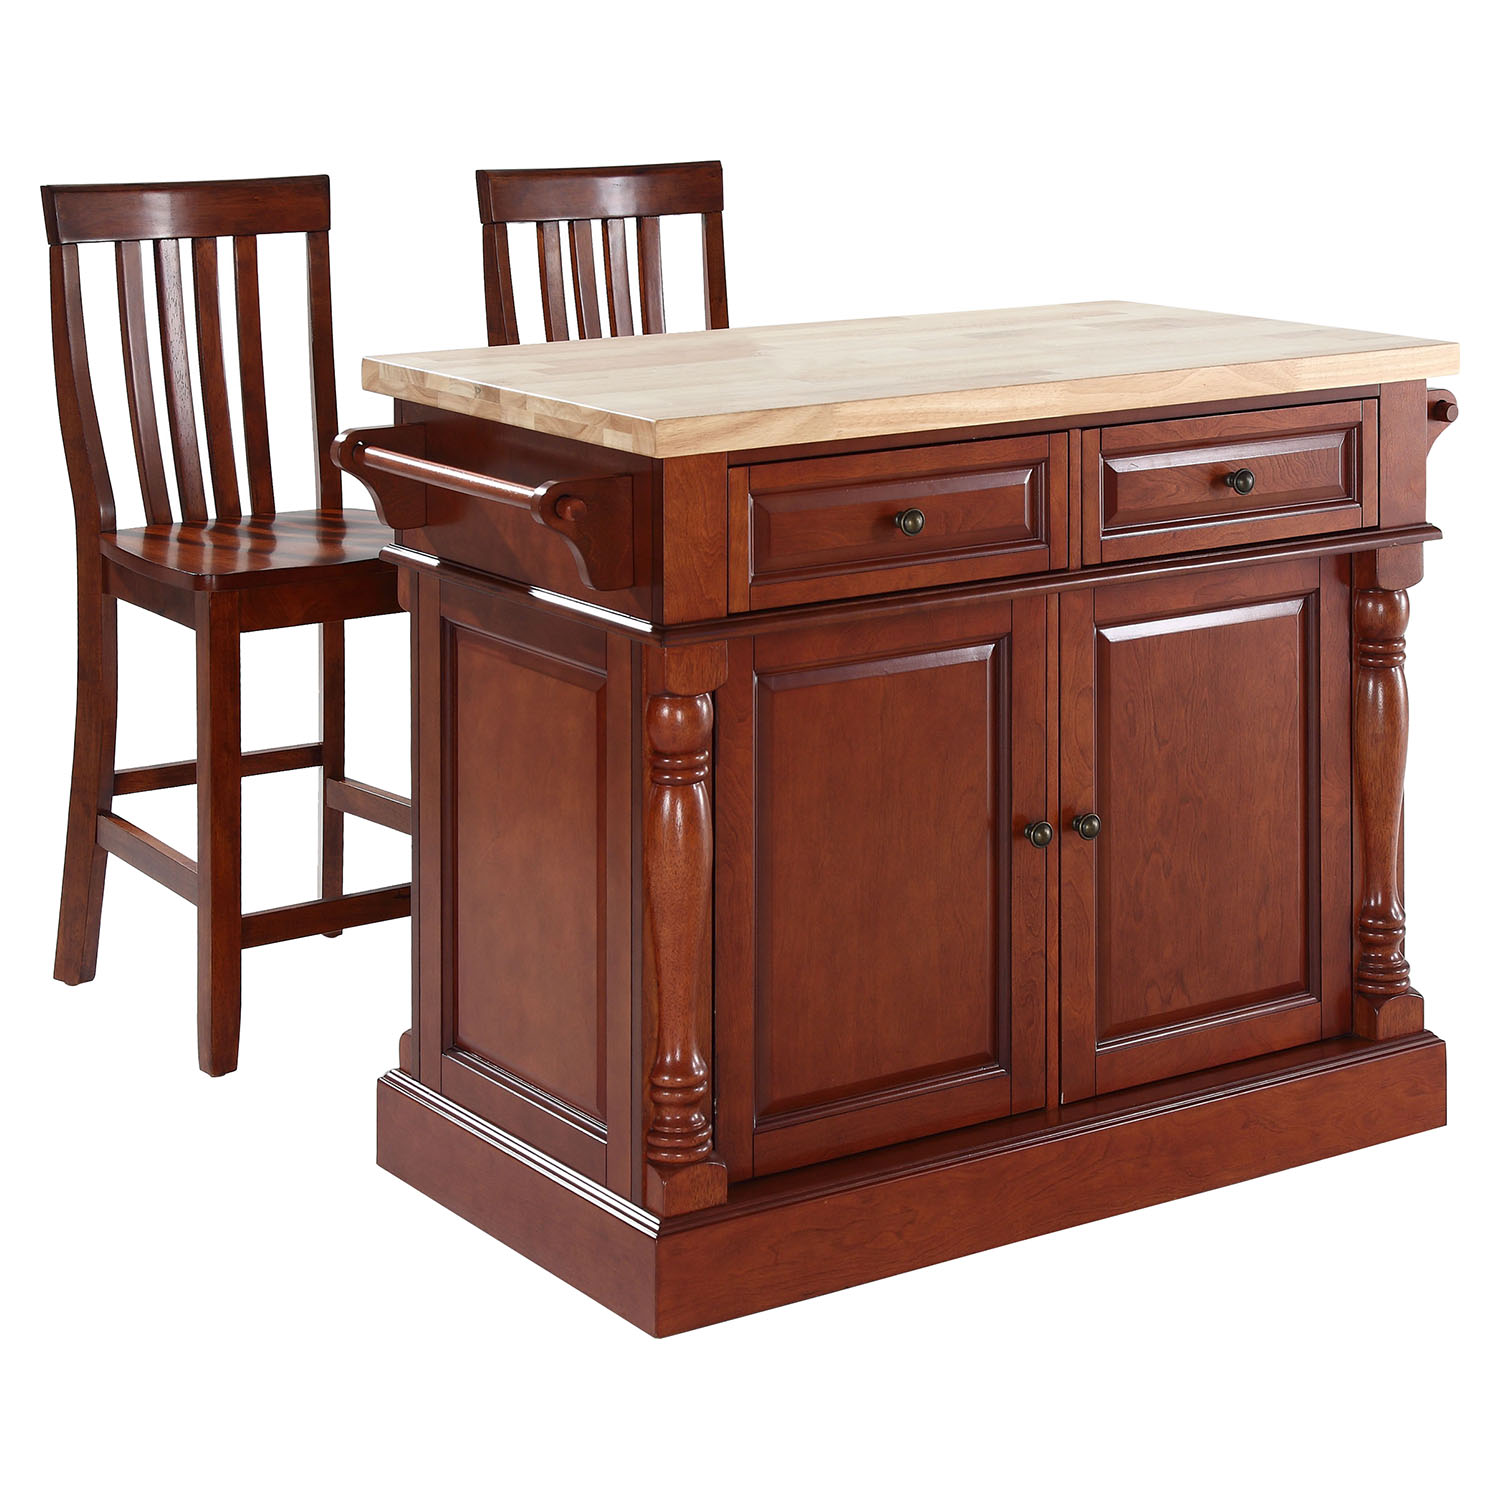 Butcher Block Top Kitchen Island with House Stools - Cherry - CROS-KF300062CH